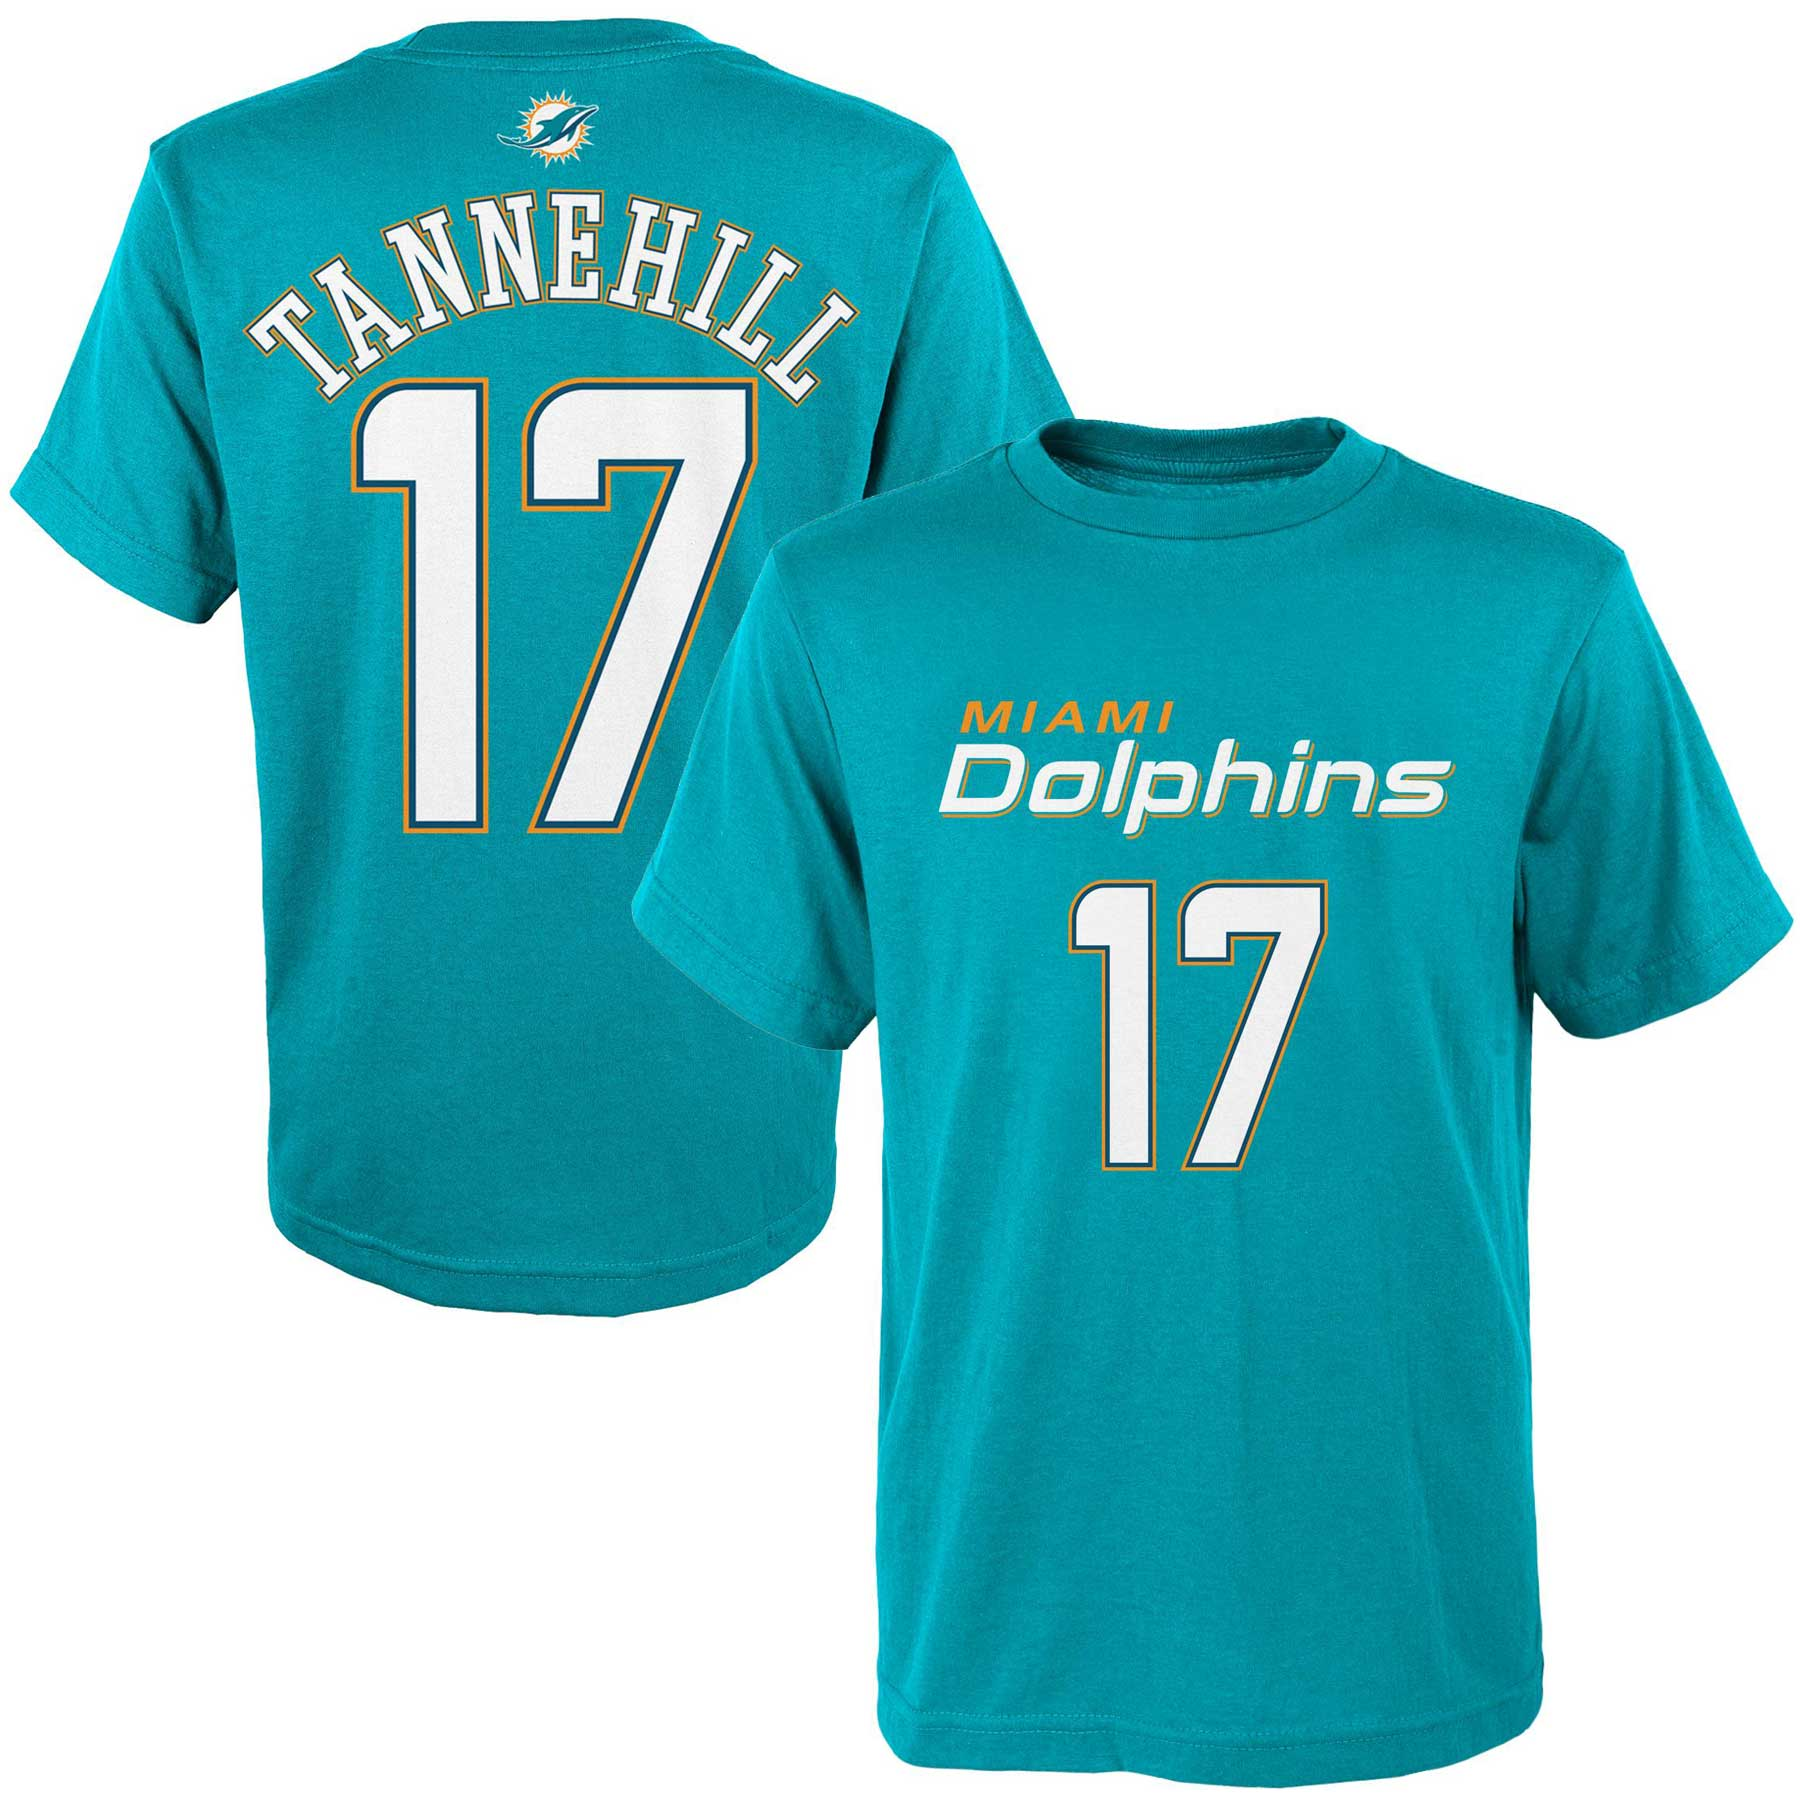 Ryan Tannehill Miami Dolphins Youth Mainliner Name & Number T-Shirt - Aqua